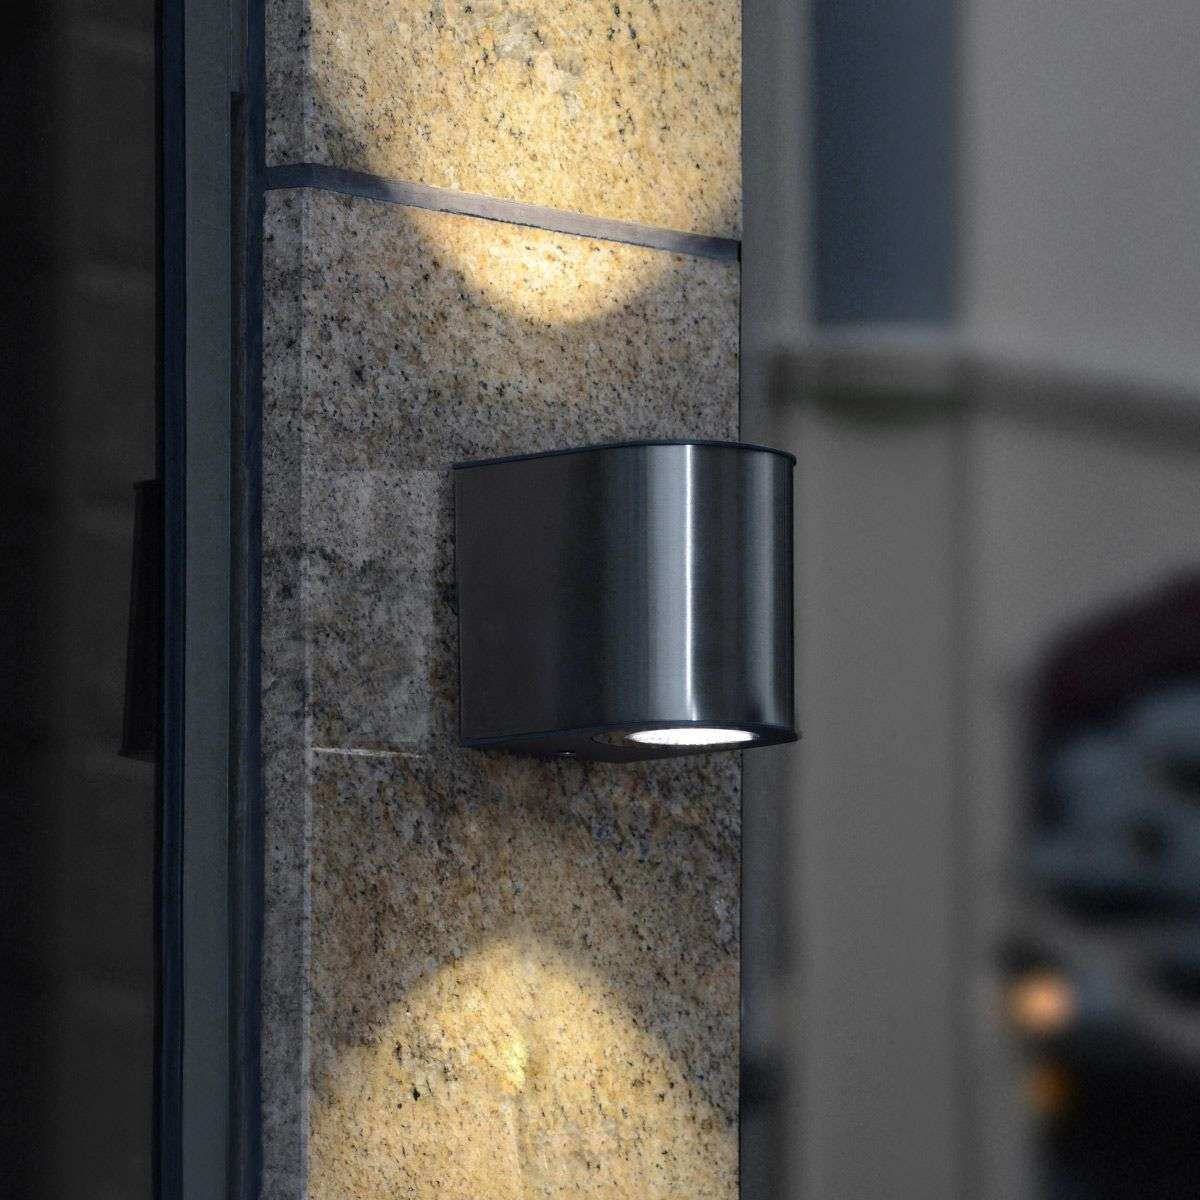 Led Exterior Wall Light. hubbardton forge 305895 banded led exterior ...